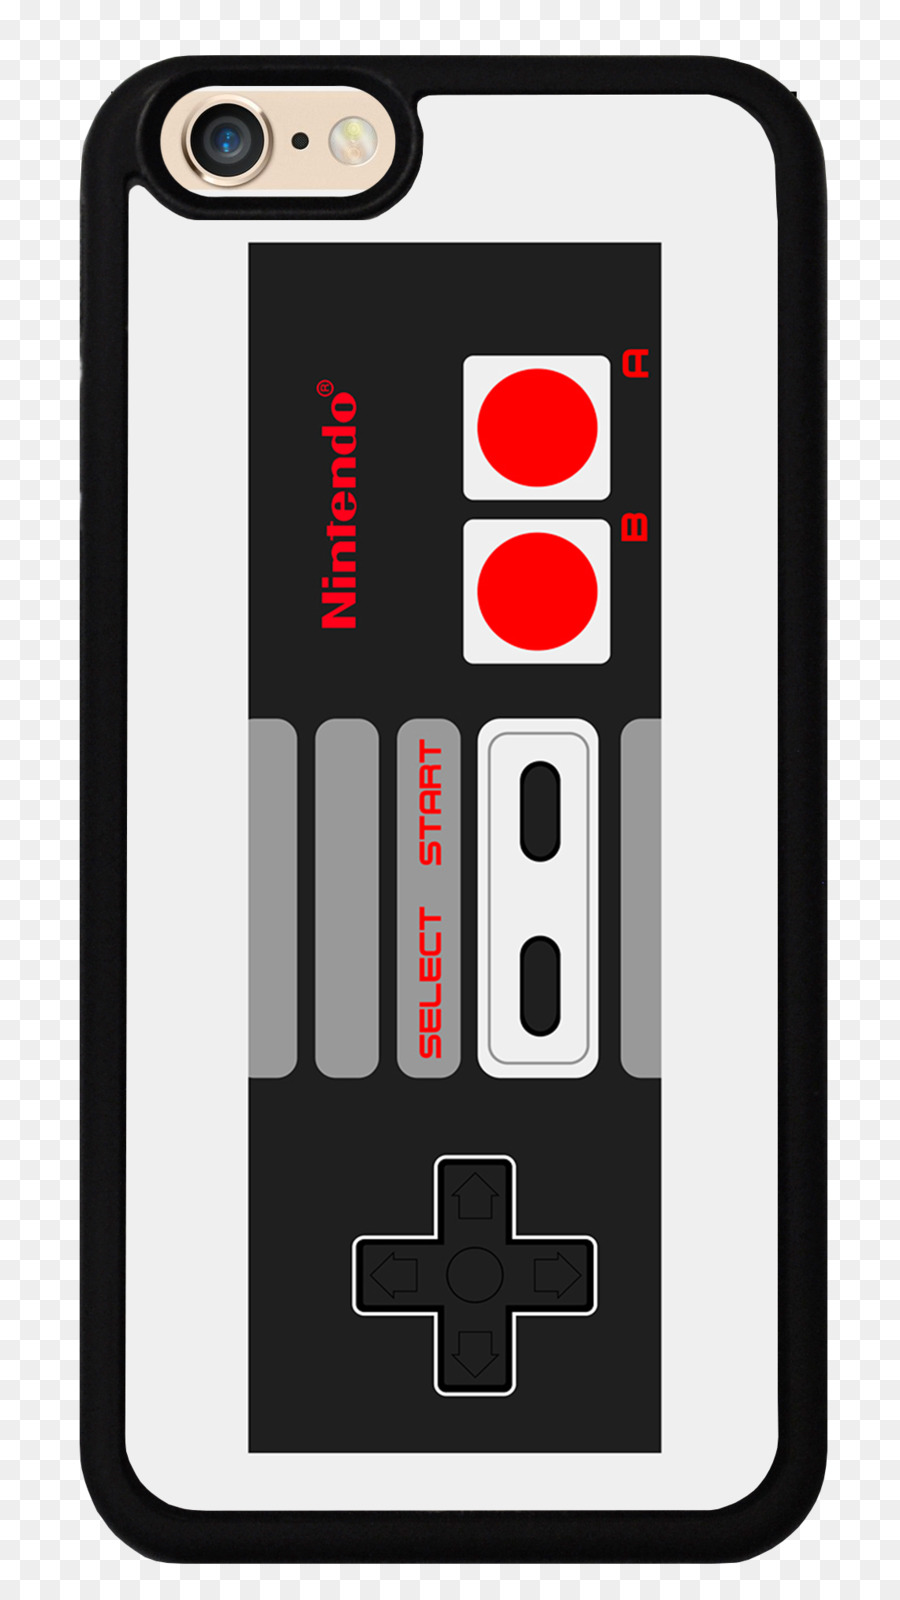 Super Mario Bros Telephony png download - 1141*2028 - Free